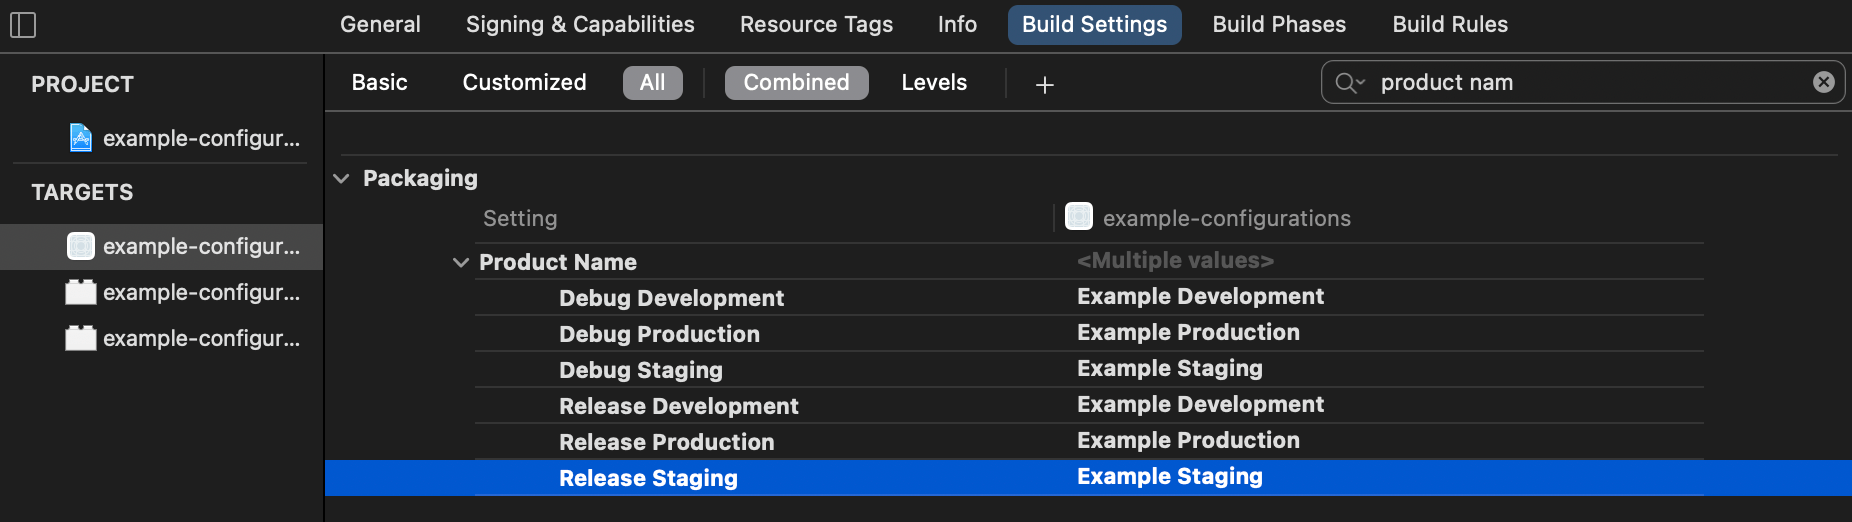 Double-click on each value to edit it.